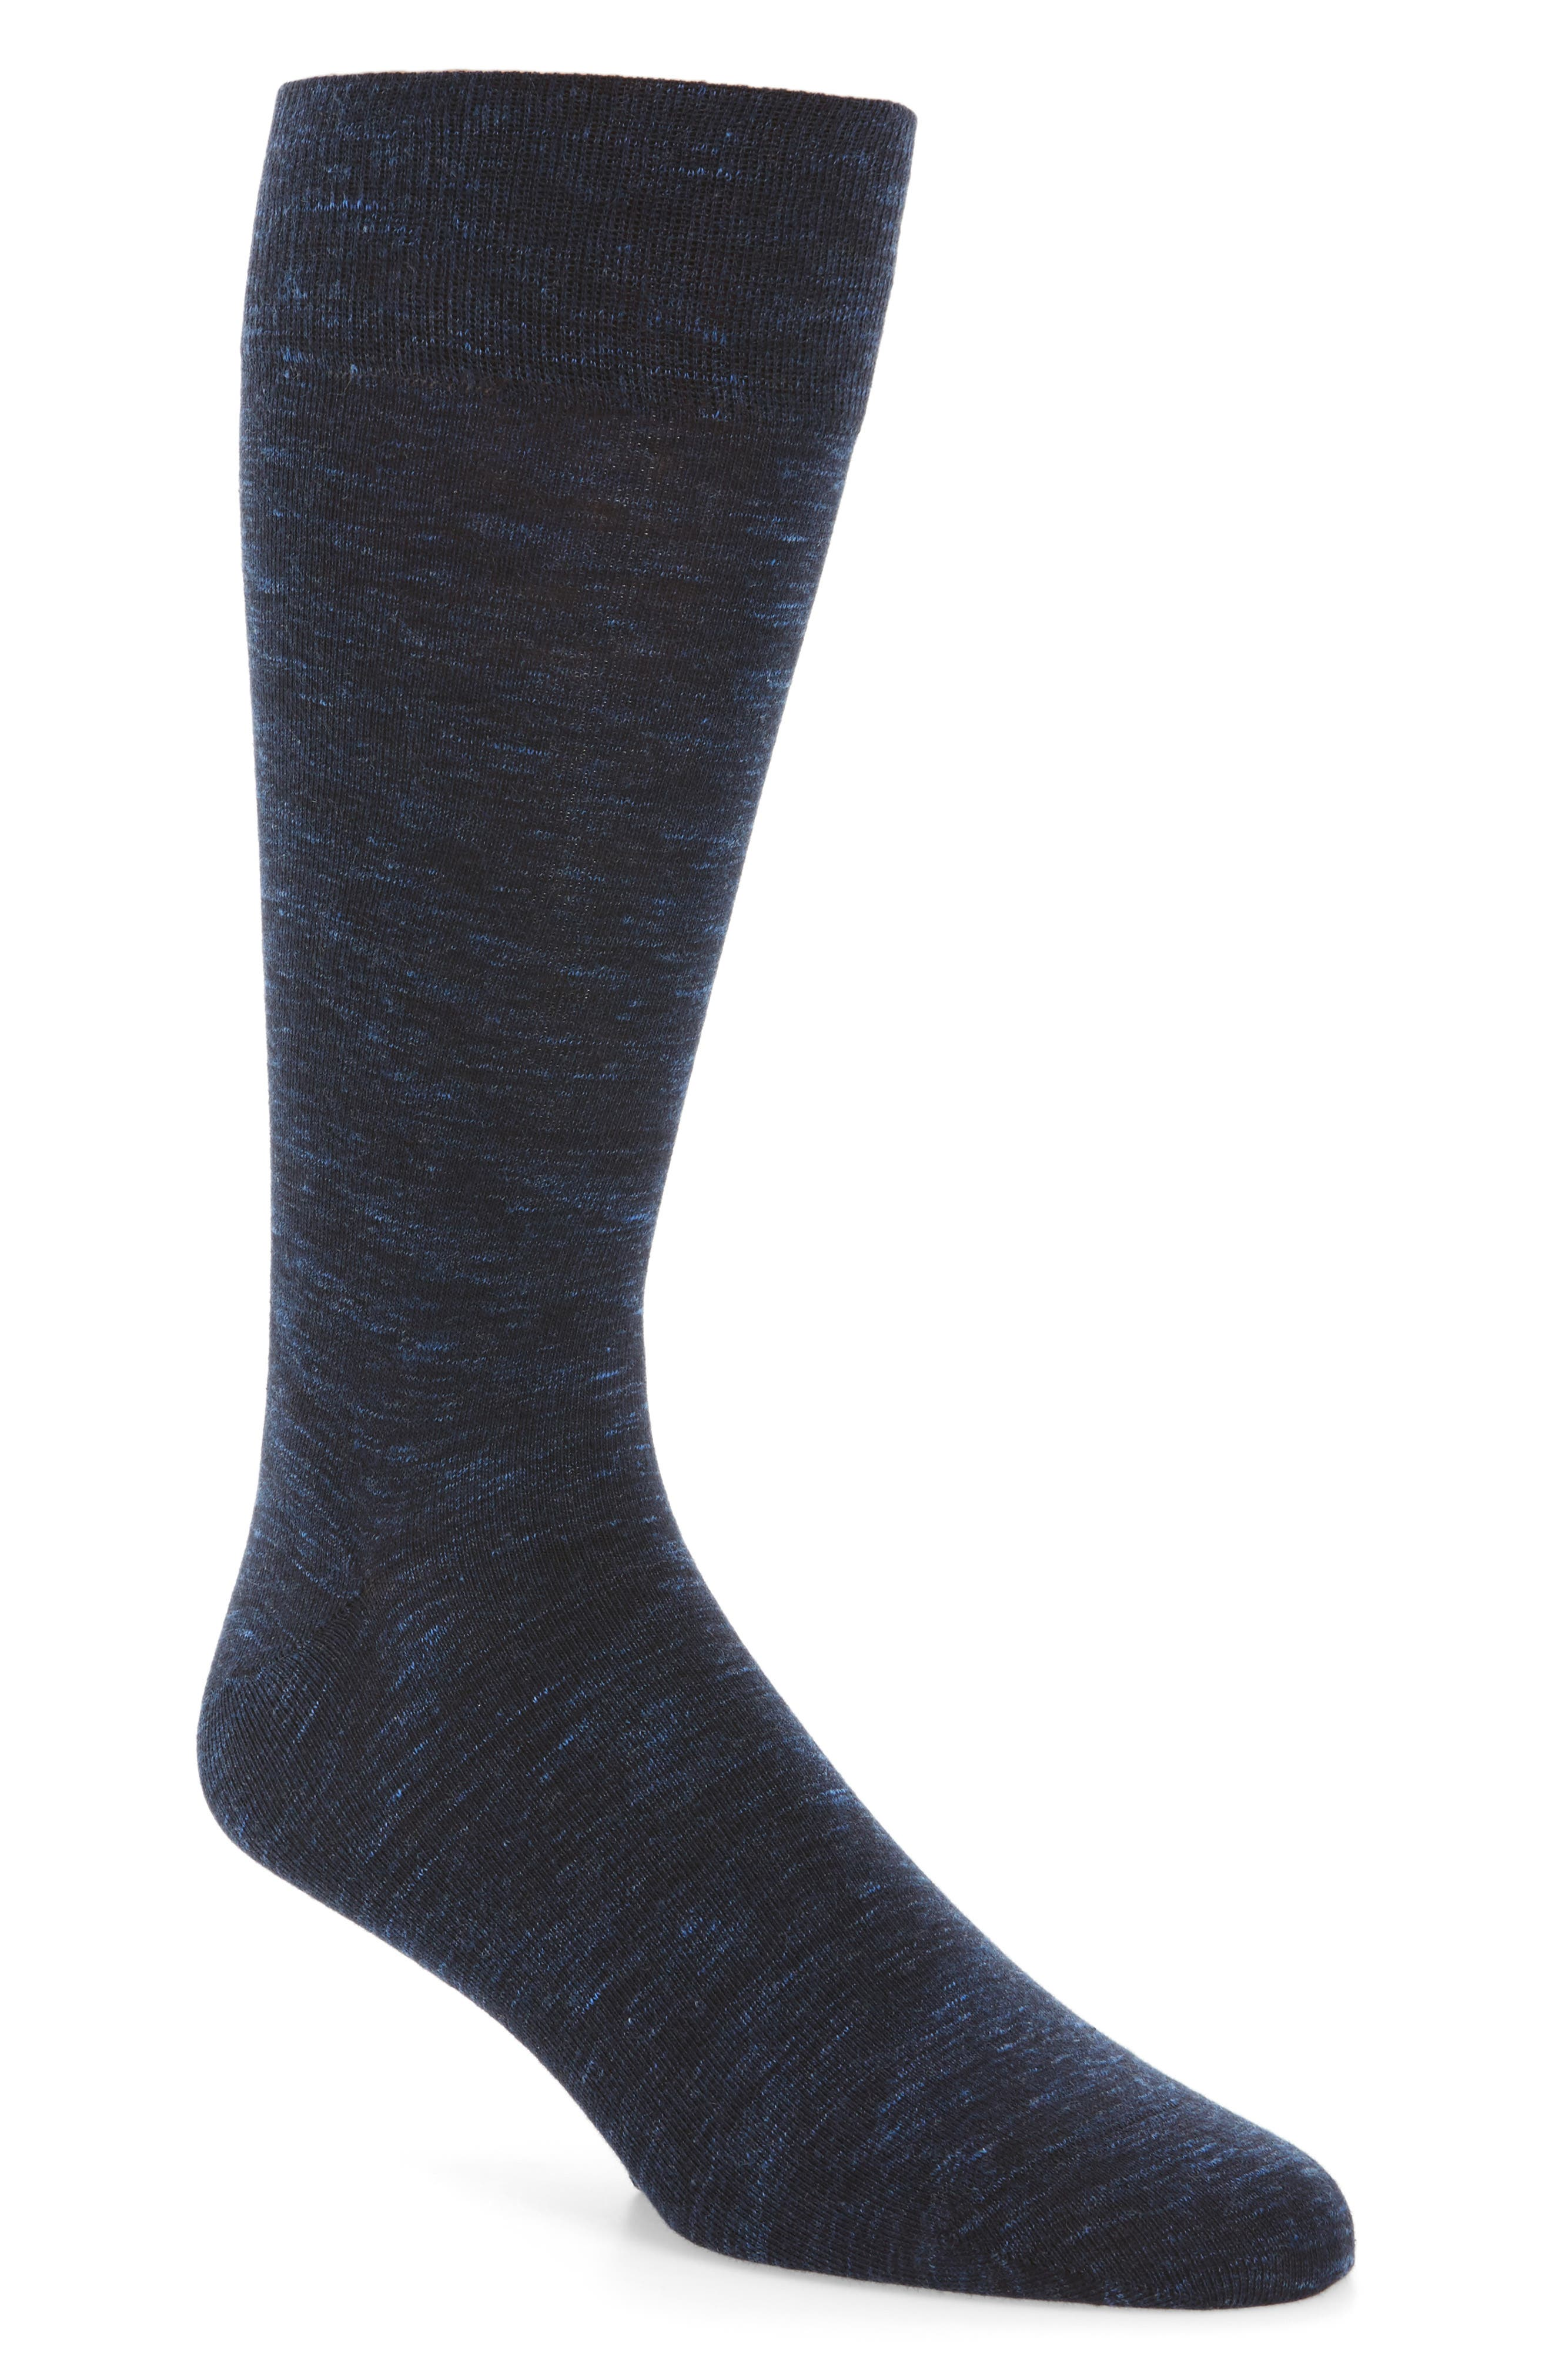 Alternate Image 1 Selected - Cole Haan Twist Socks (3 for $30)